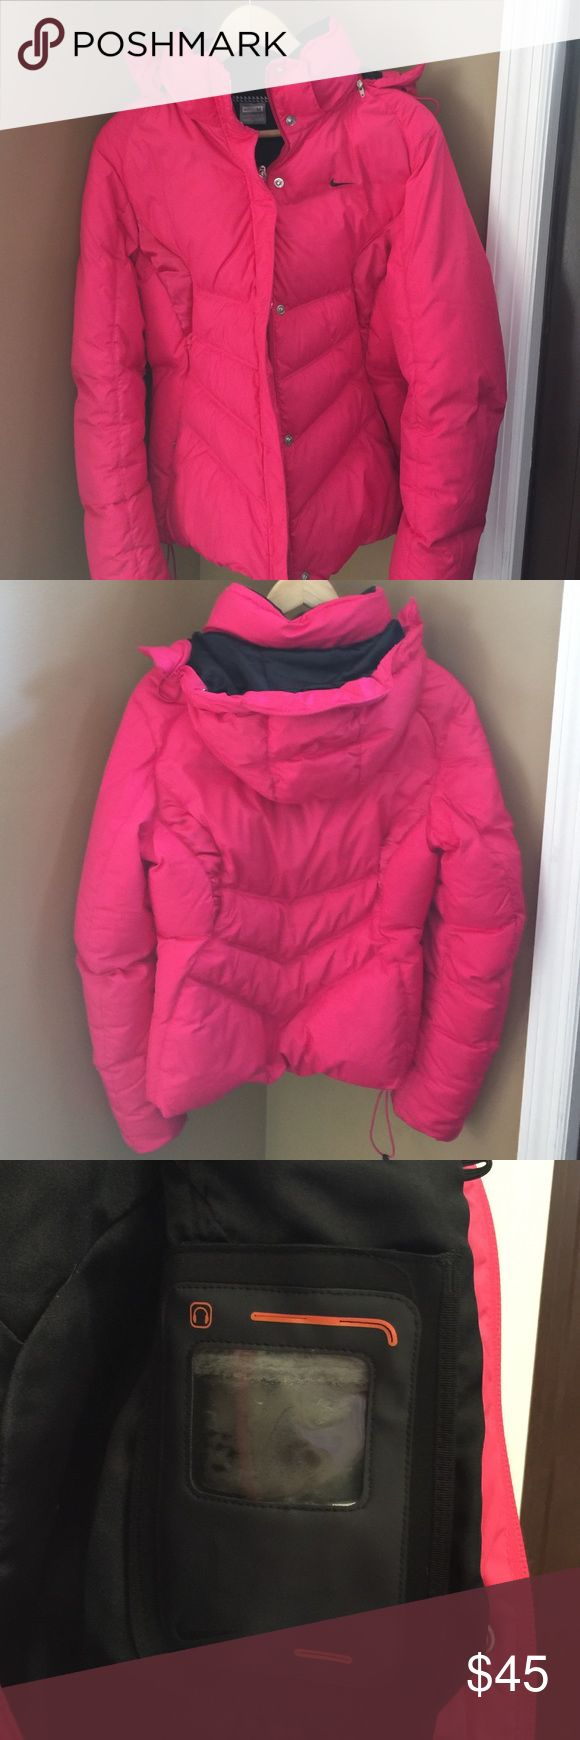 Nike winter coat Size medium. Down feathers! iPod/iPhone holder. I used this coat snowboarding and loved it for the cold weather. I am not a huge pink fan anymore and have moved into a black coat. Excellent condition, haven't worn it much. Great buy! Nike Jackets & Coats Puffers